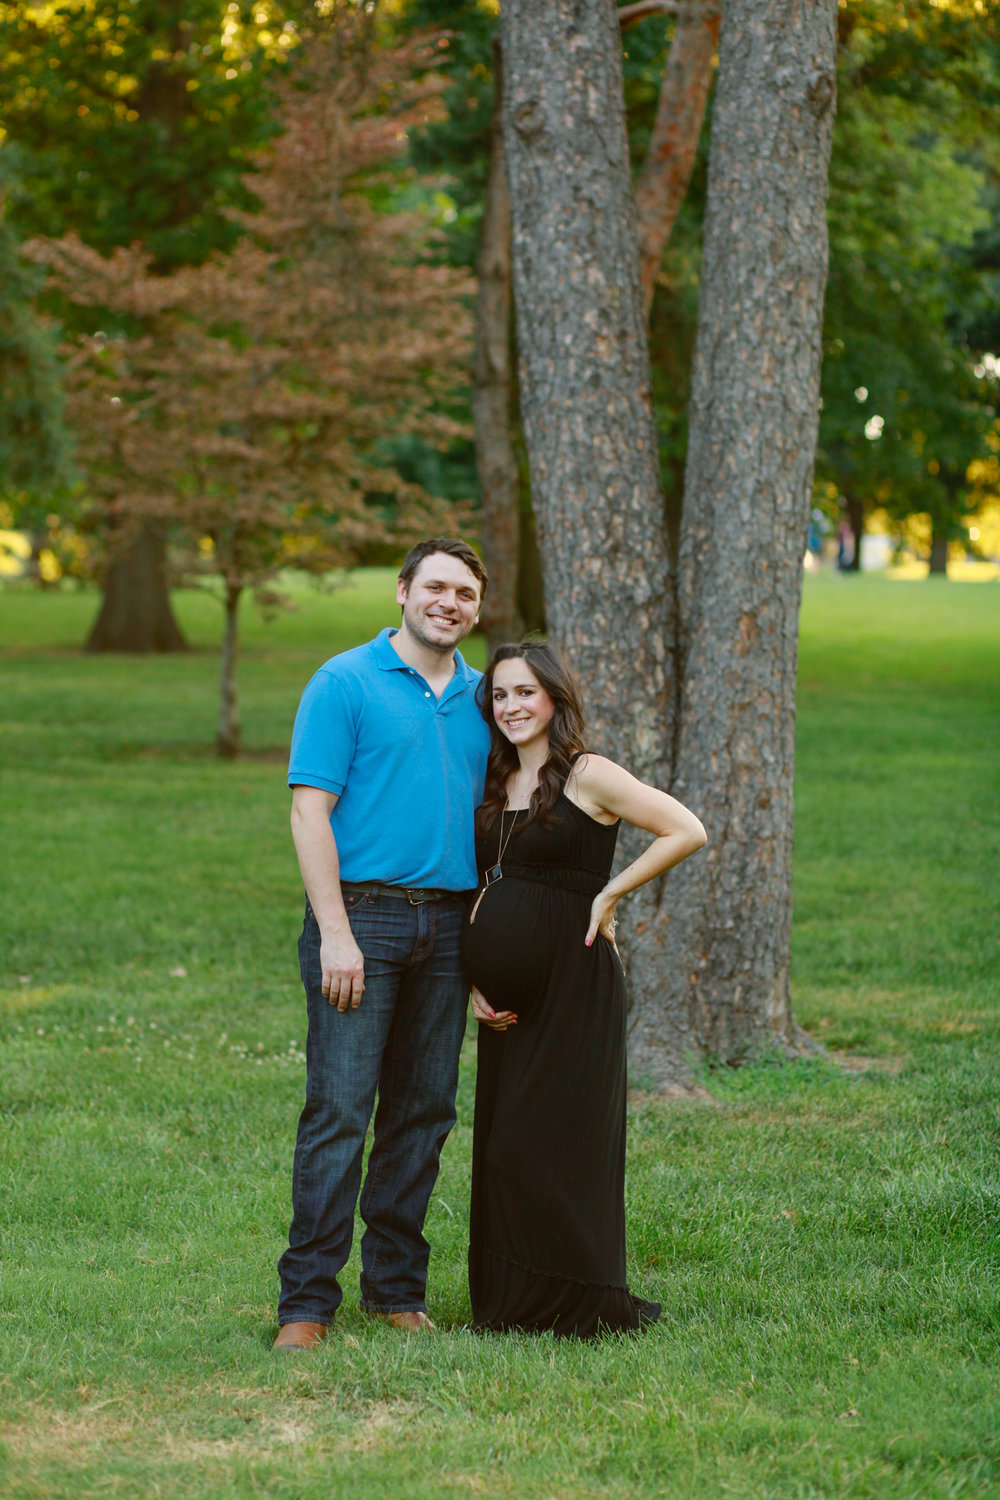 Maternity Photo Session at 37 Weeks Pregnant | Mallorie Owens